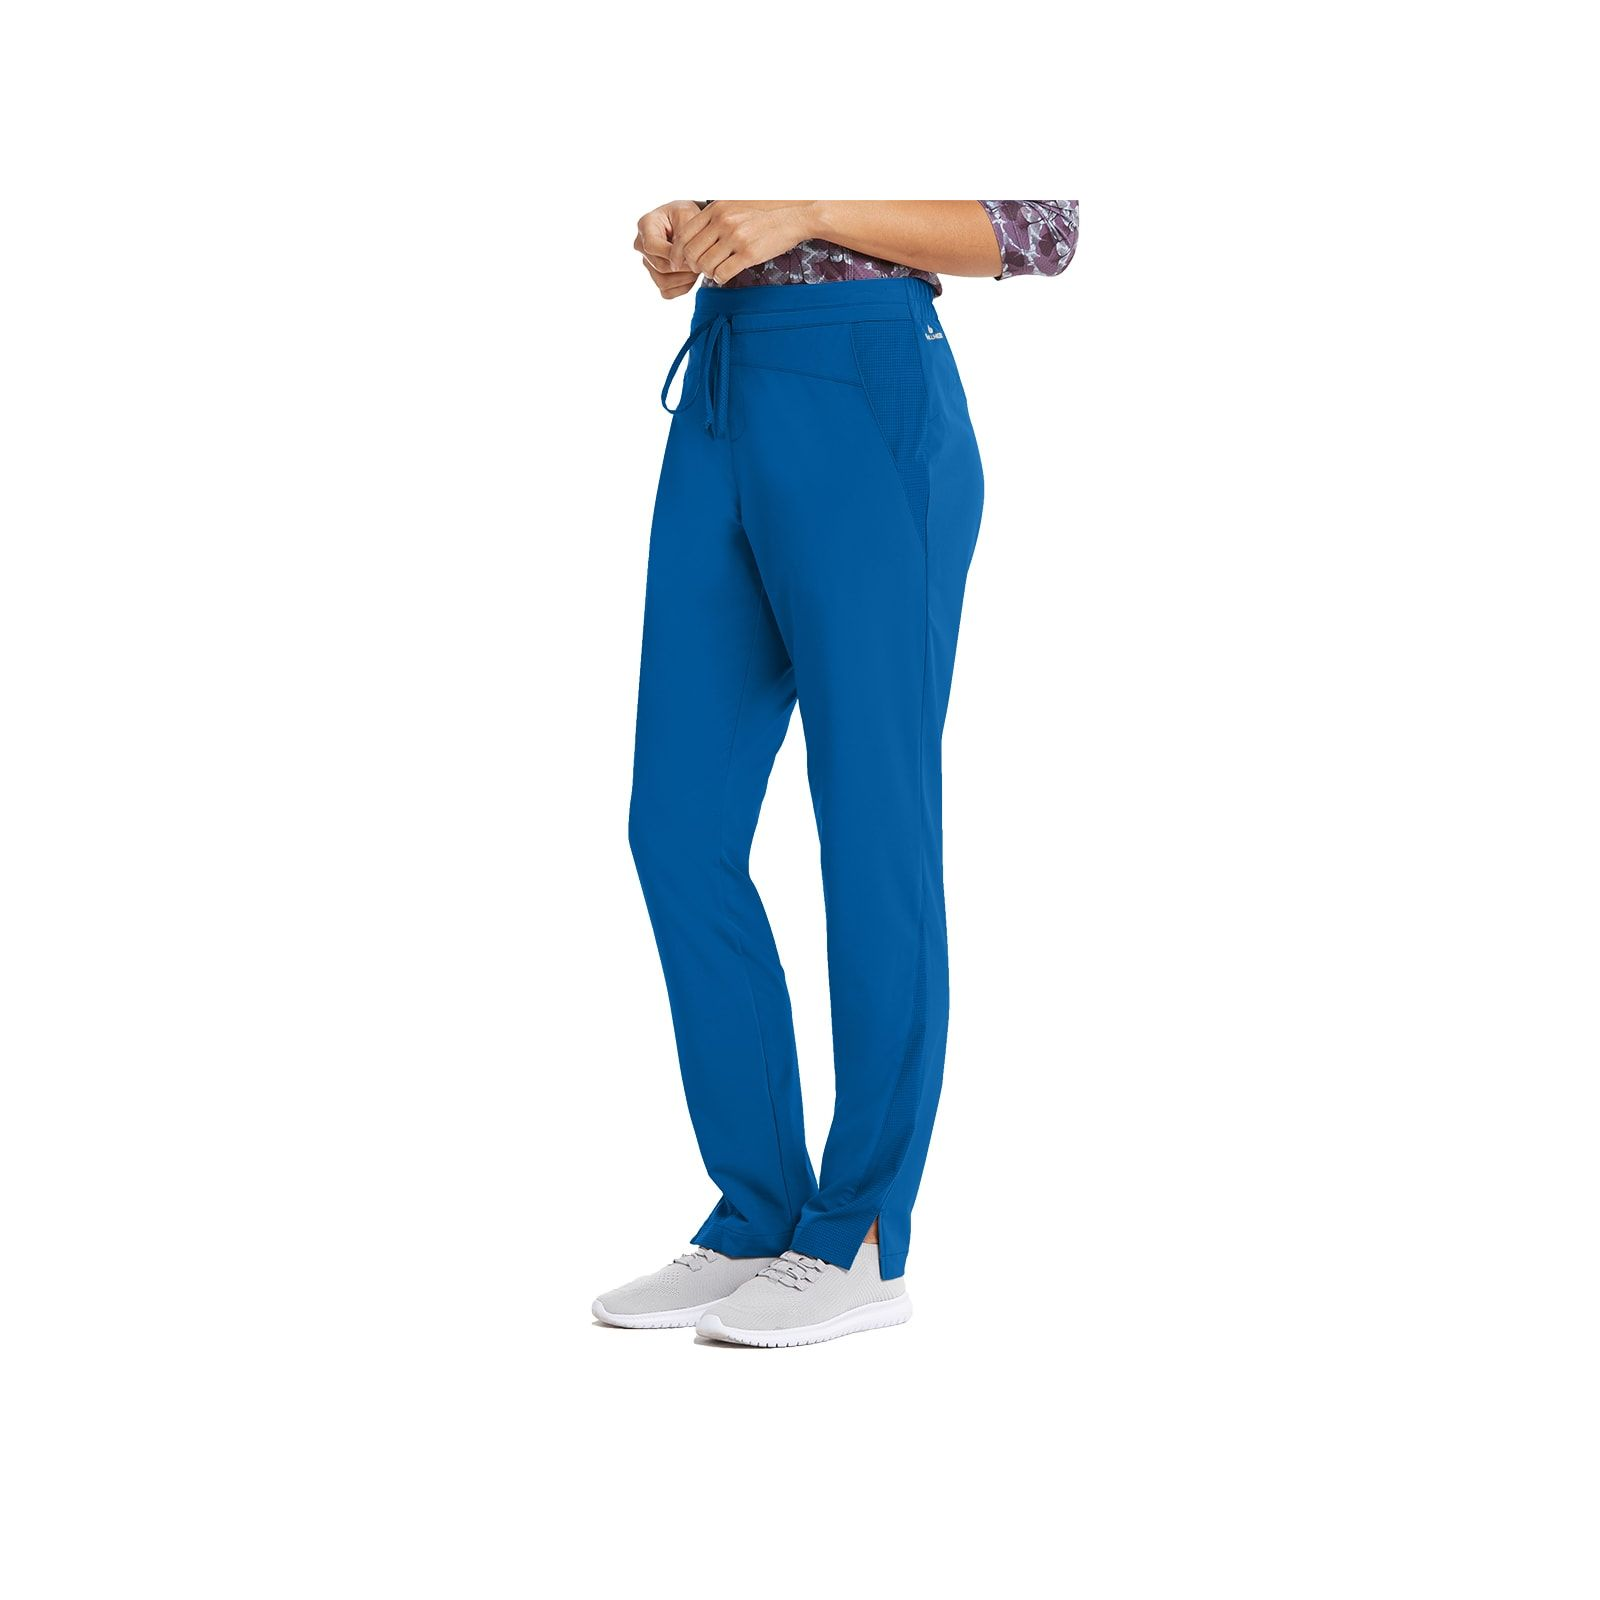 "Pantalon médical femme, couleur bleu royal vue de côté, collection ""Barco One Wellness"" (BWP506-)"